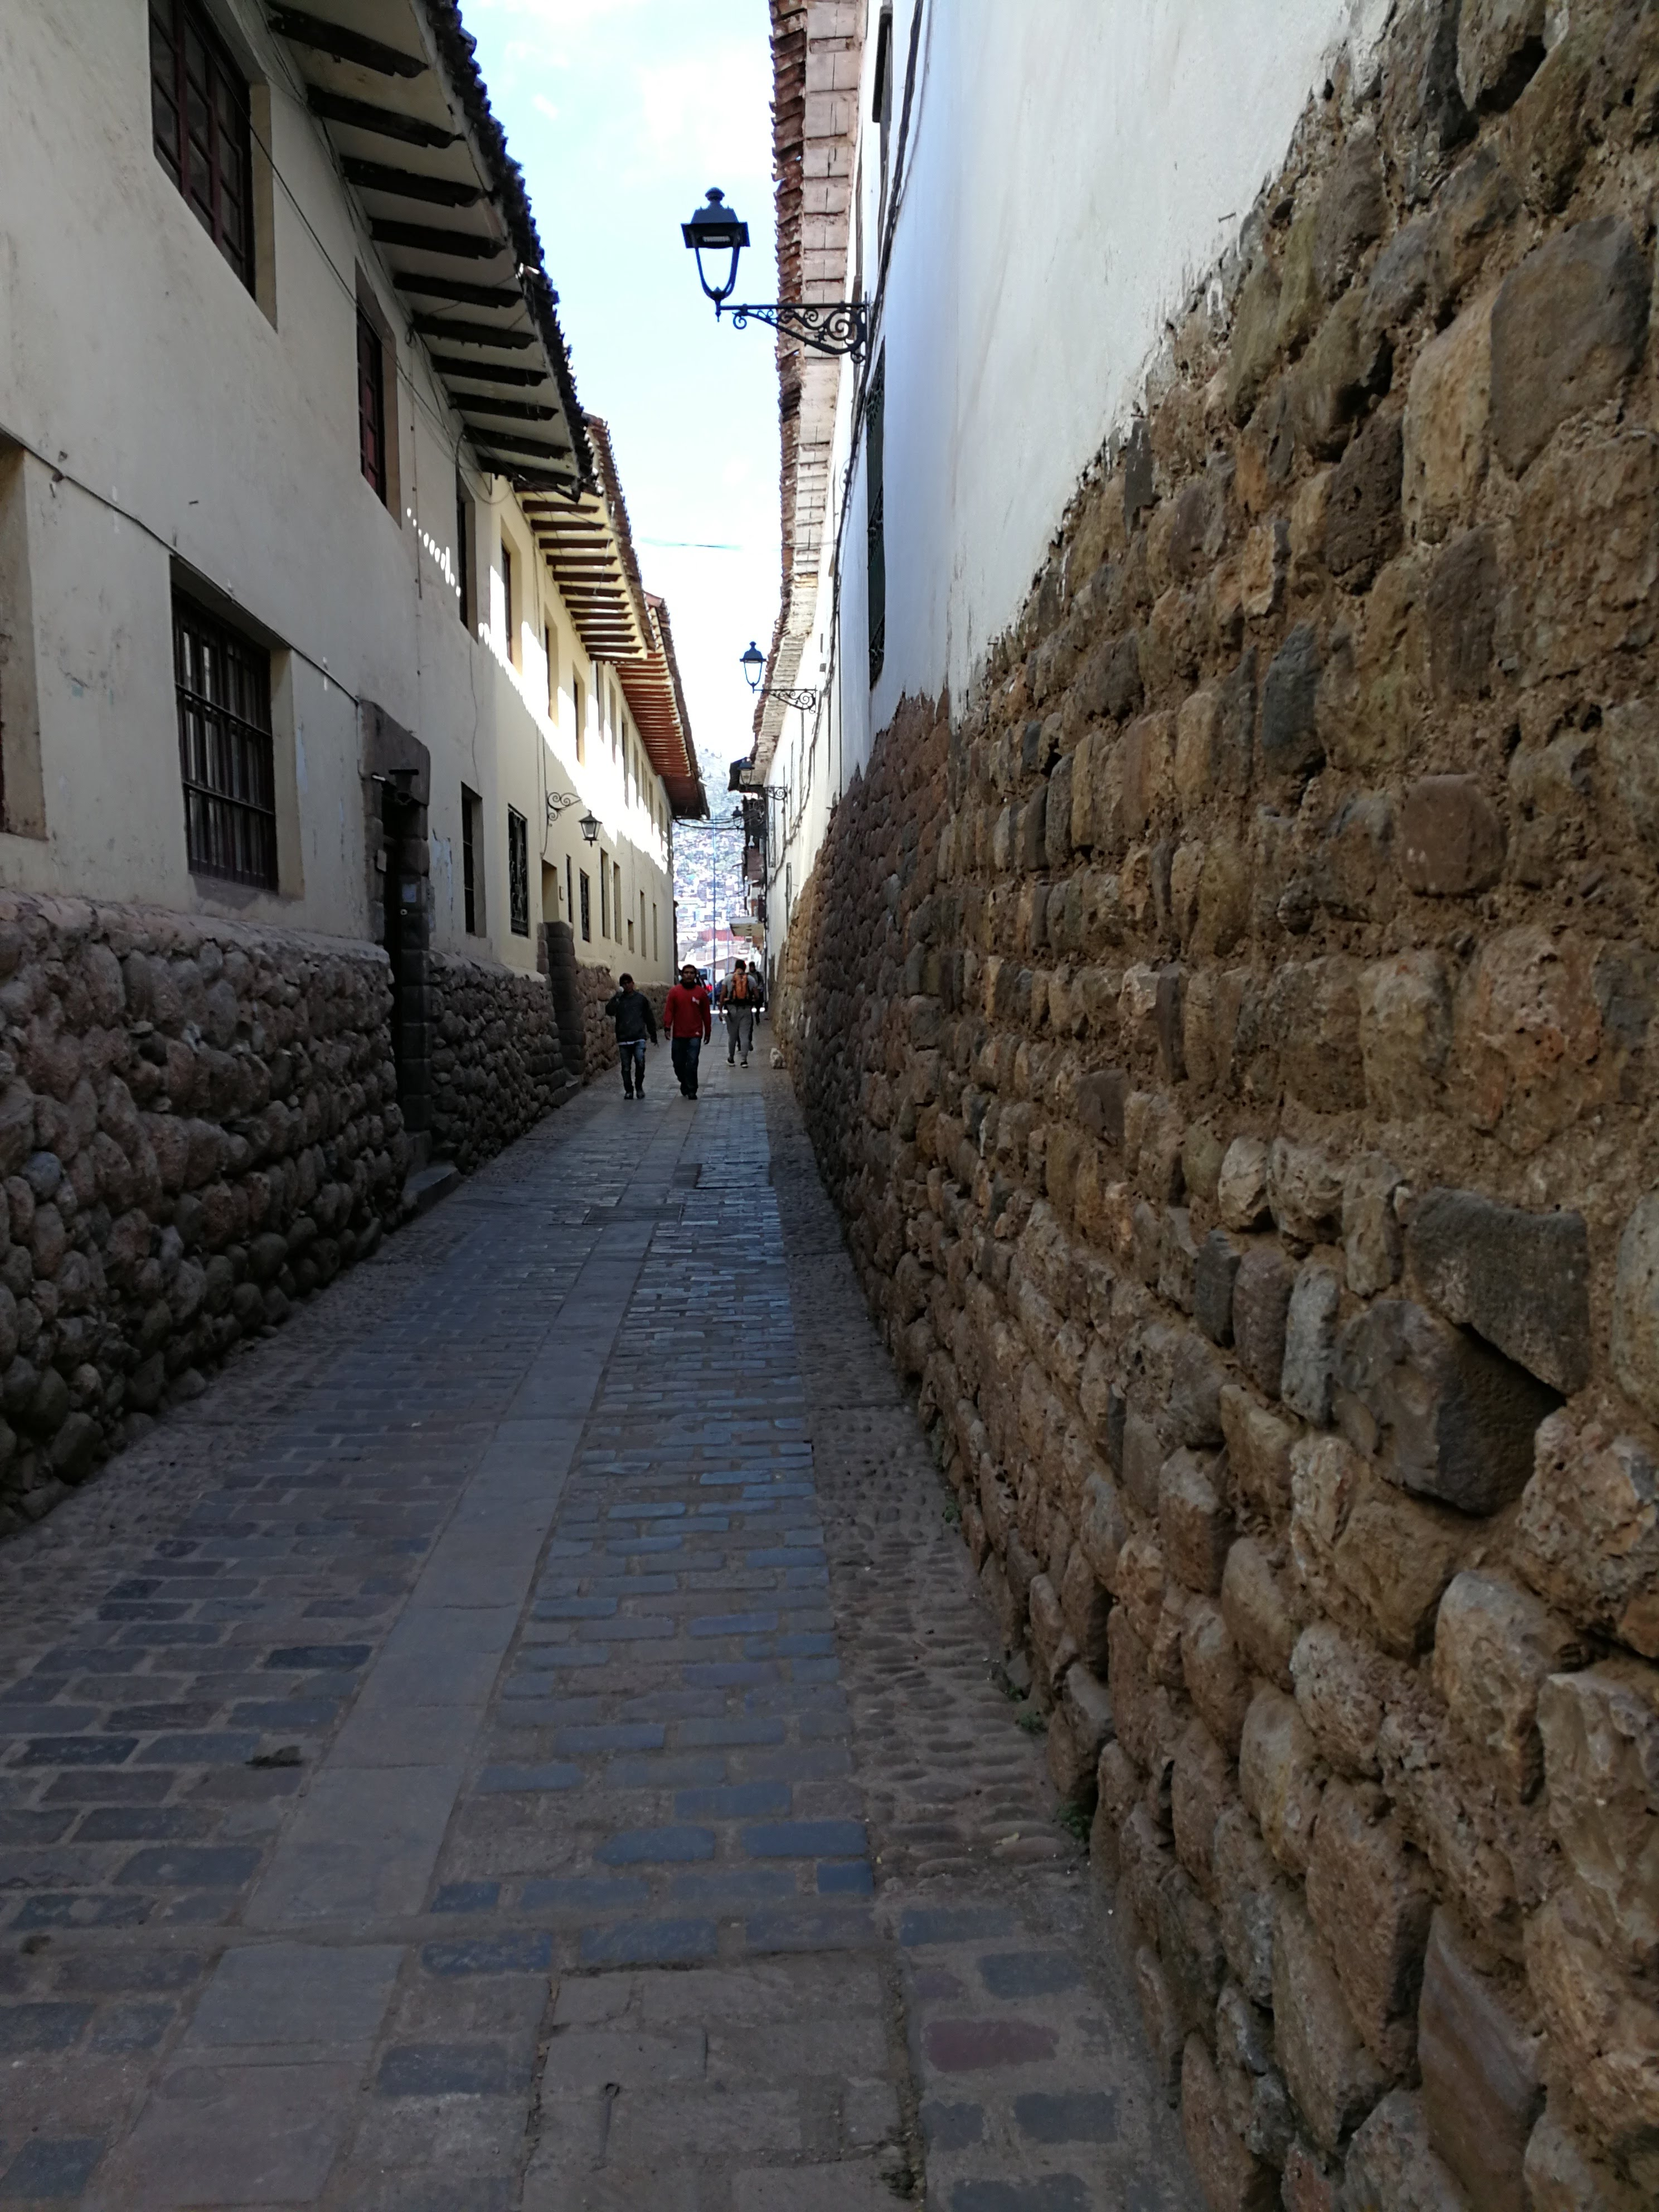 Andean street with Incan stones.